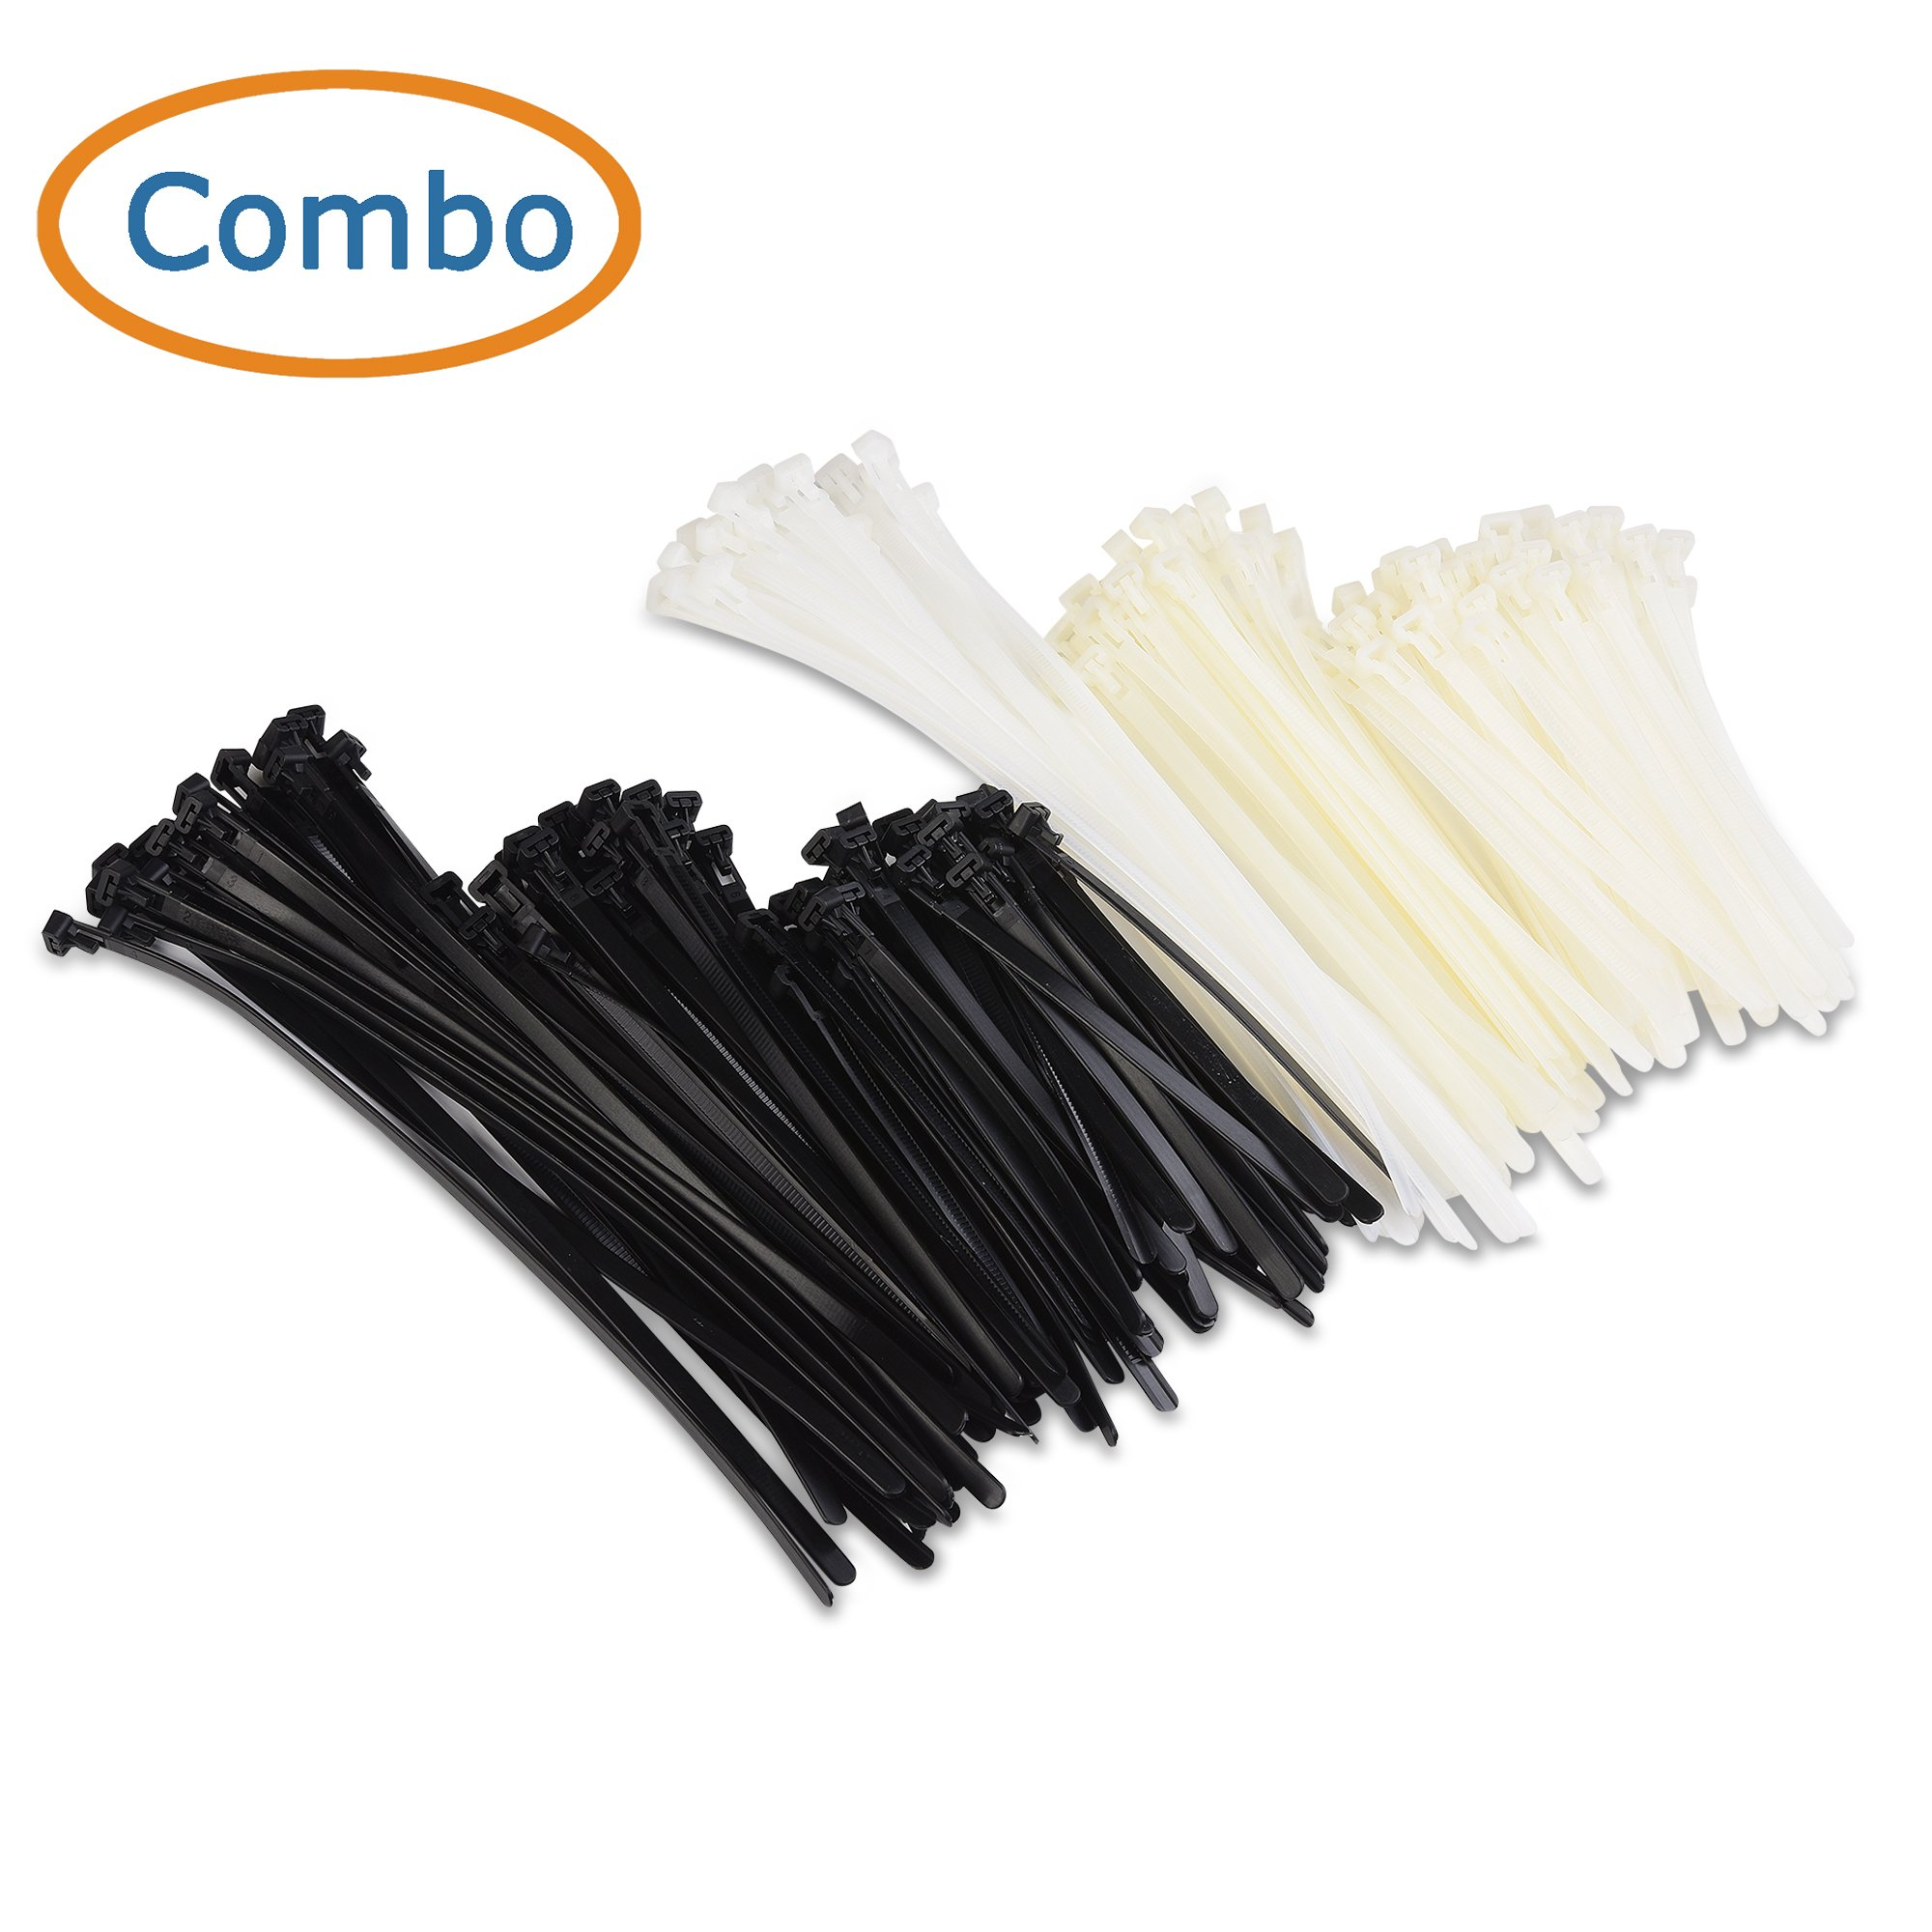 Cable Matters (Combo Pack) 200 Reusable 6+8+12-Inch Nylon Cable Ties in Black & White by Cable Matters (Image #2)